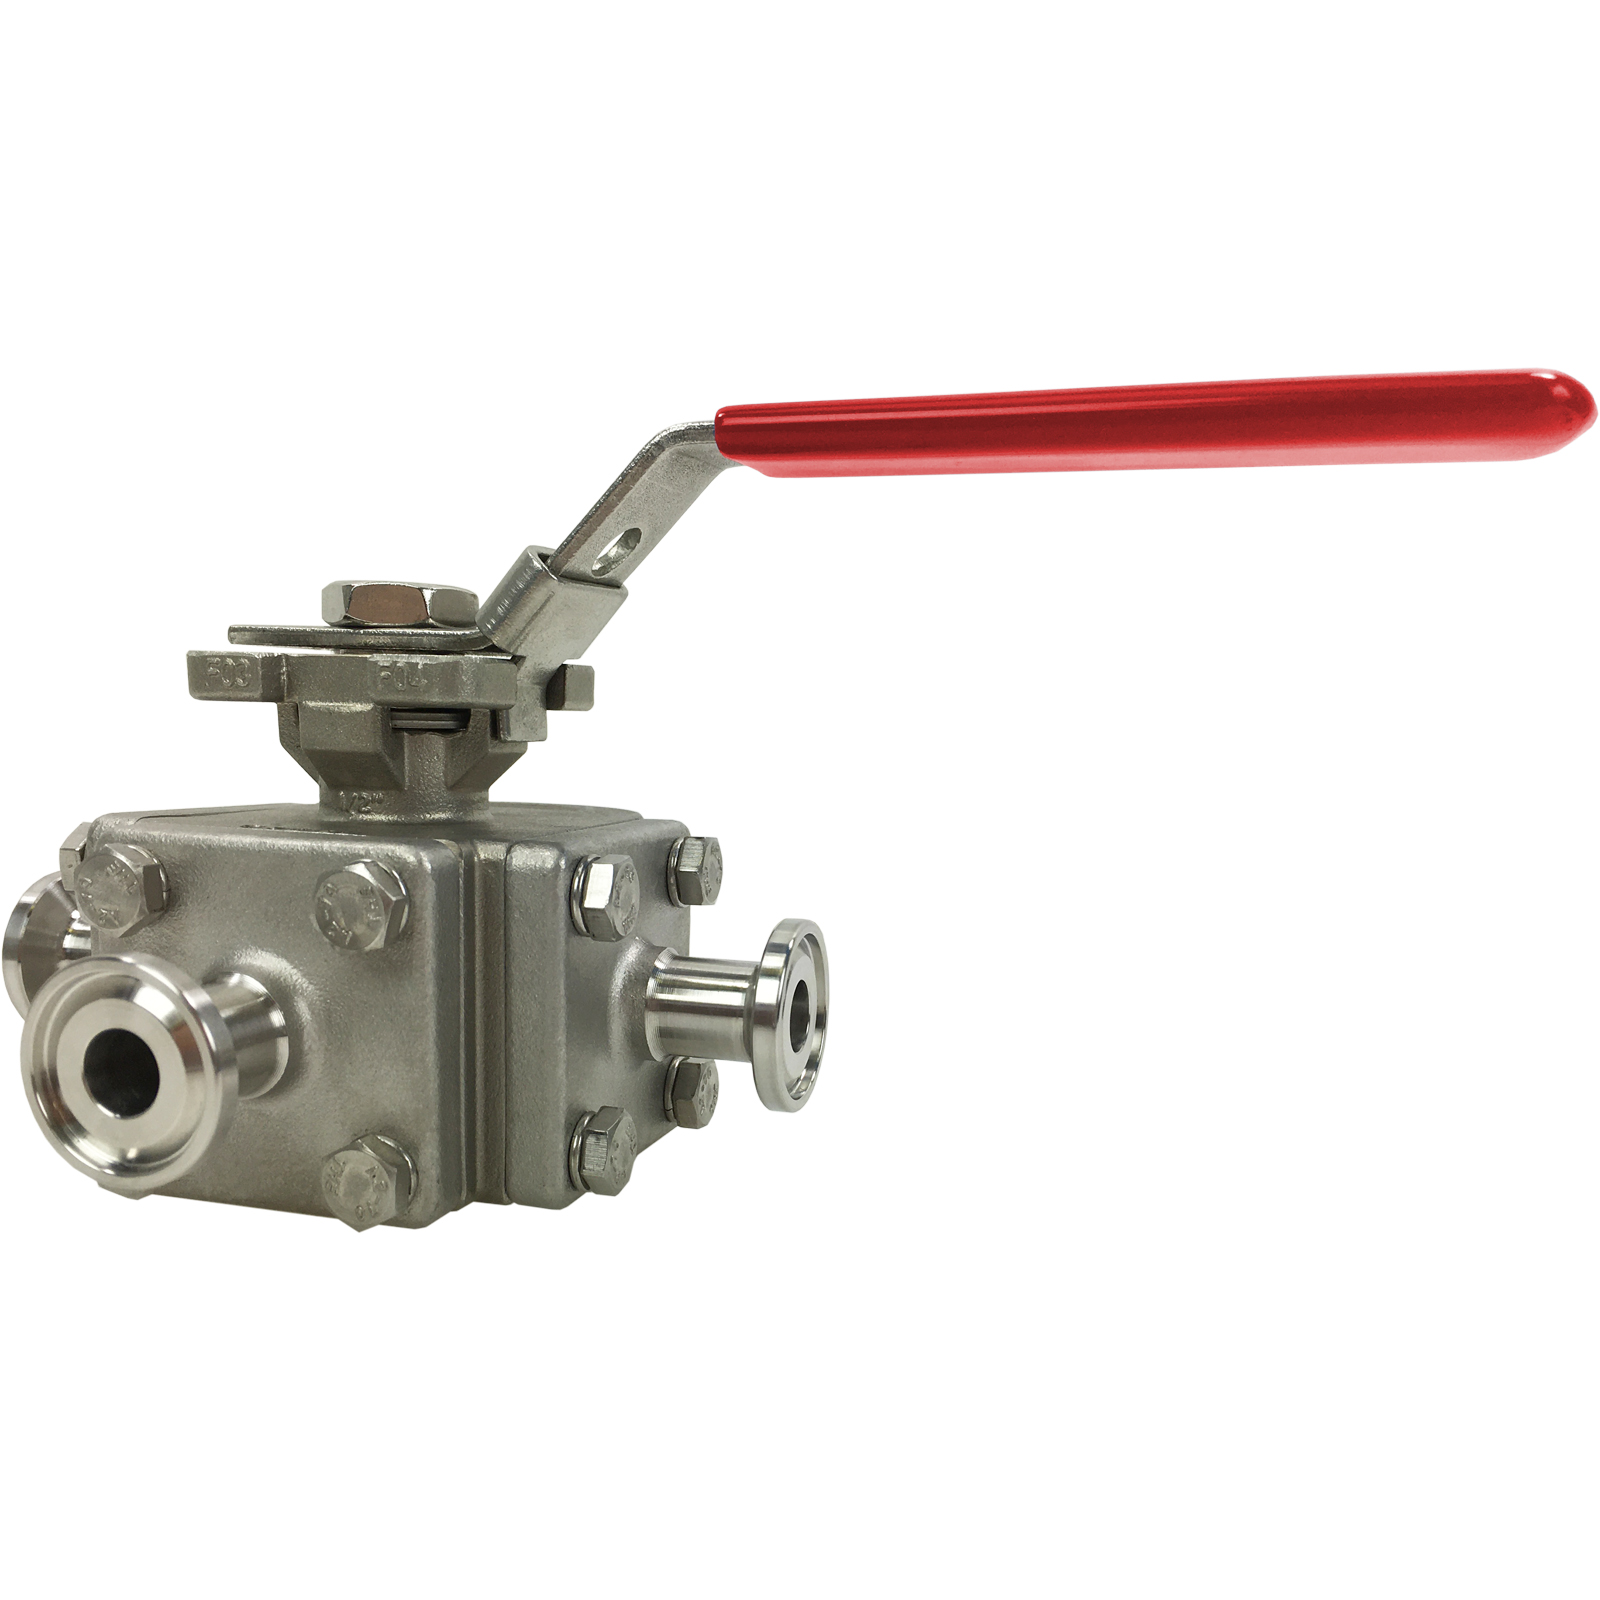 "1/2"" Sanitary 3-Way Ball Valve, L-Port, Direct Mount, Tri-Clamp"